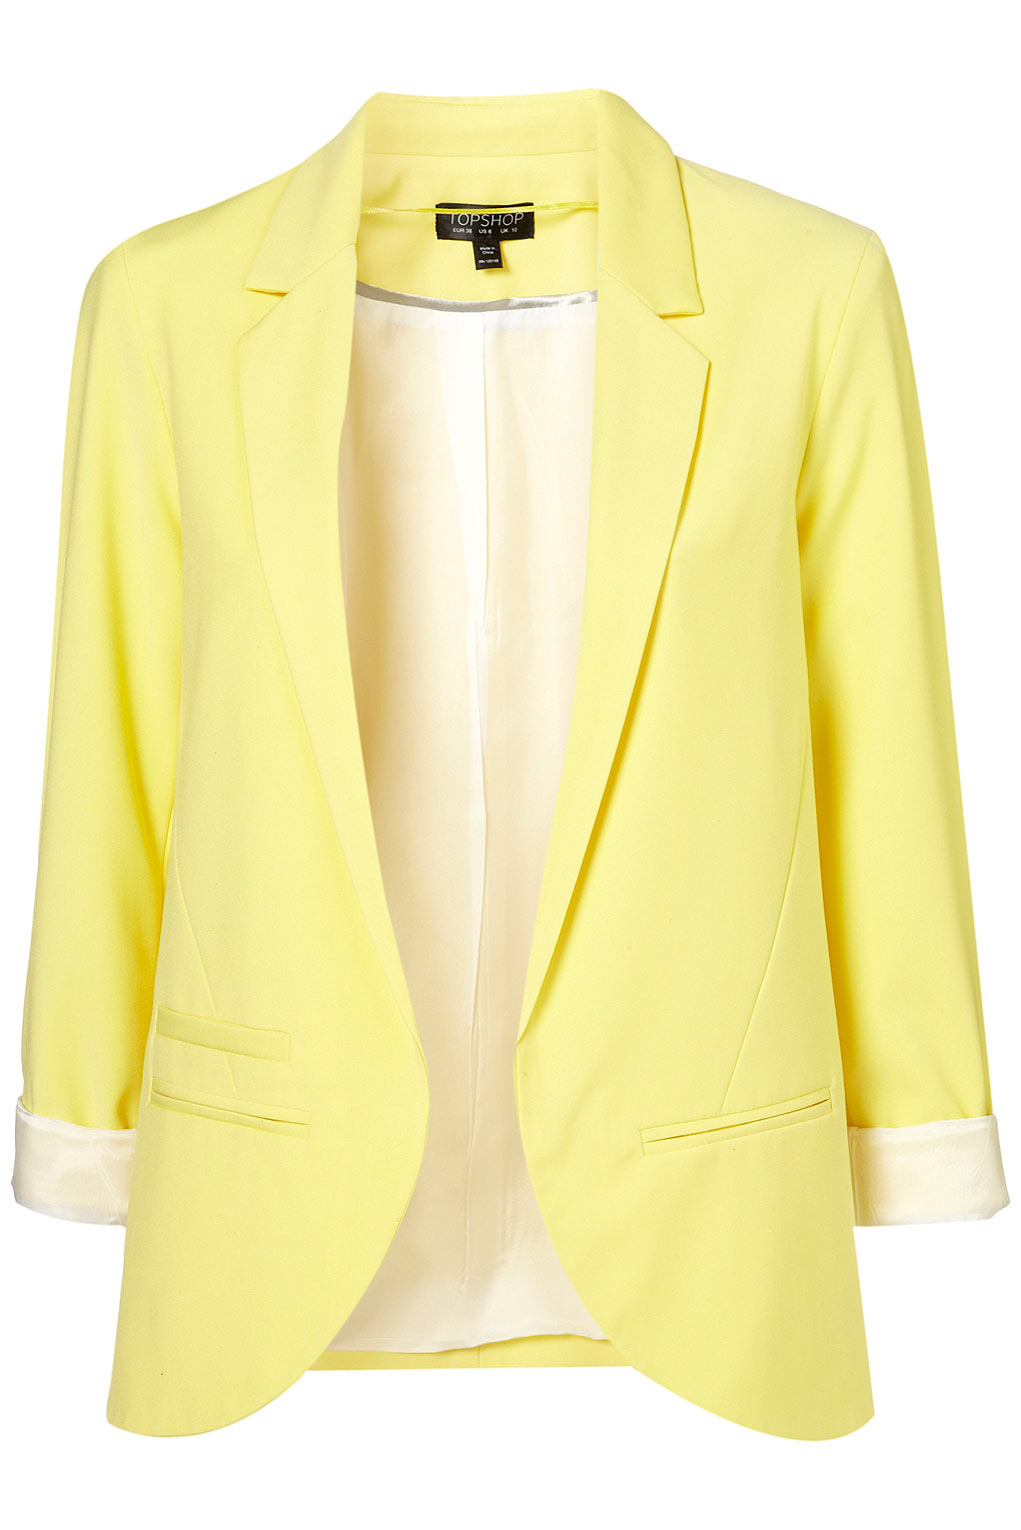 Yellow Blazer Photo Album - Reikian